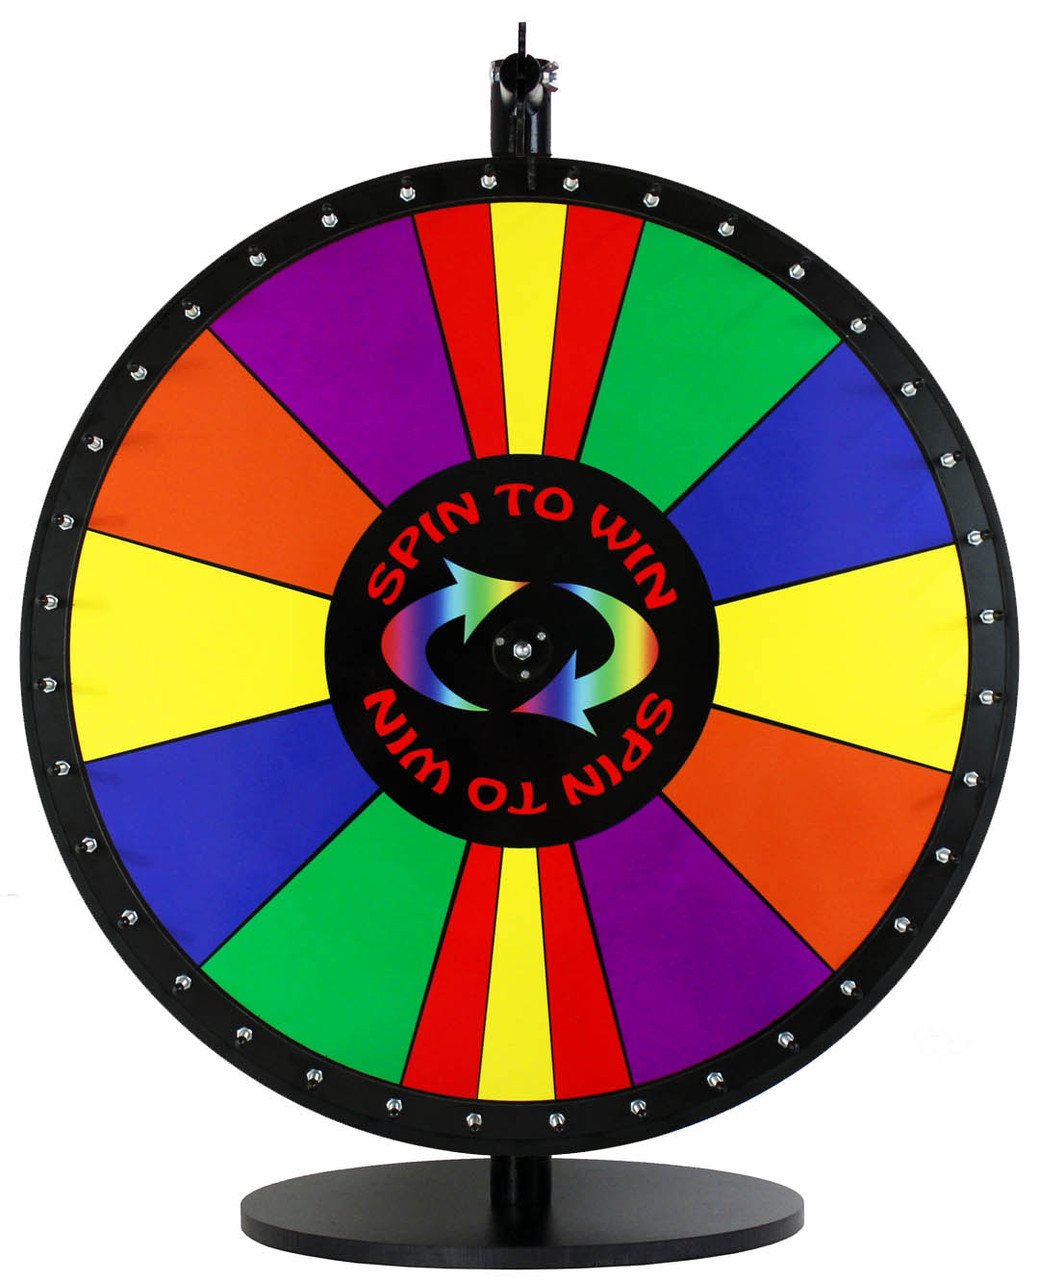 Spin And Win Real Prizes